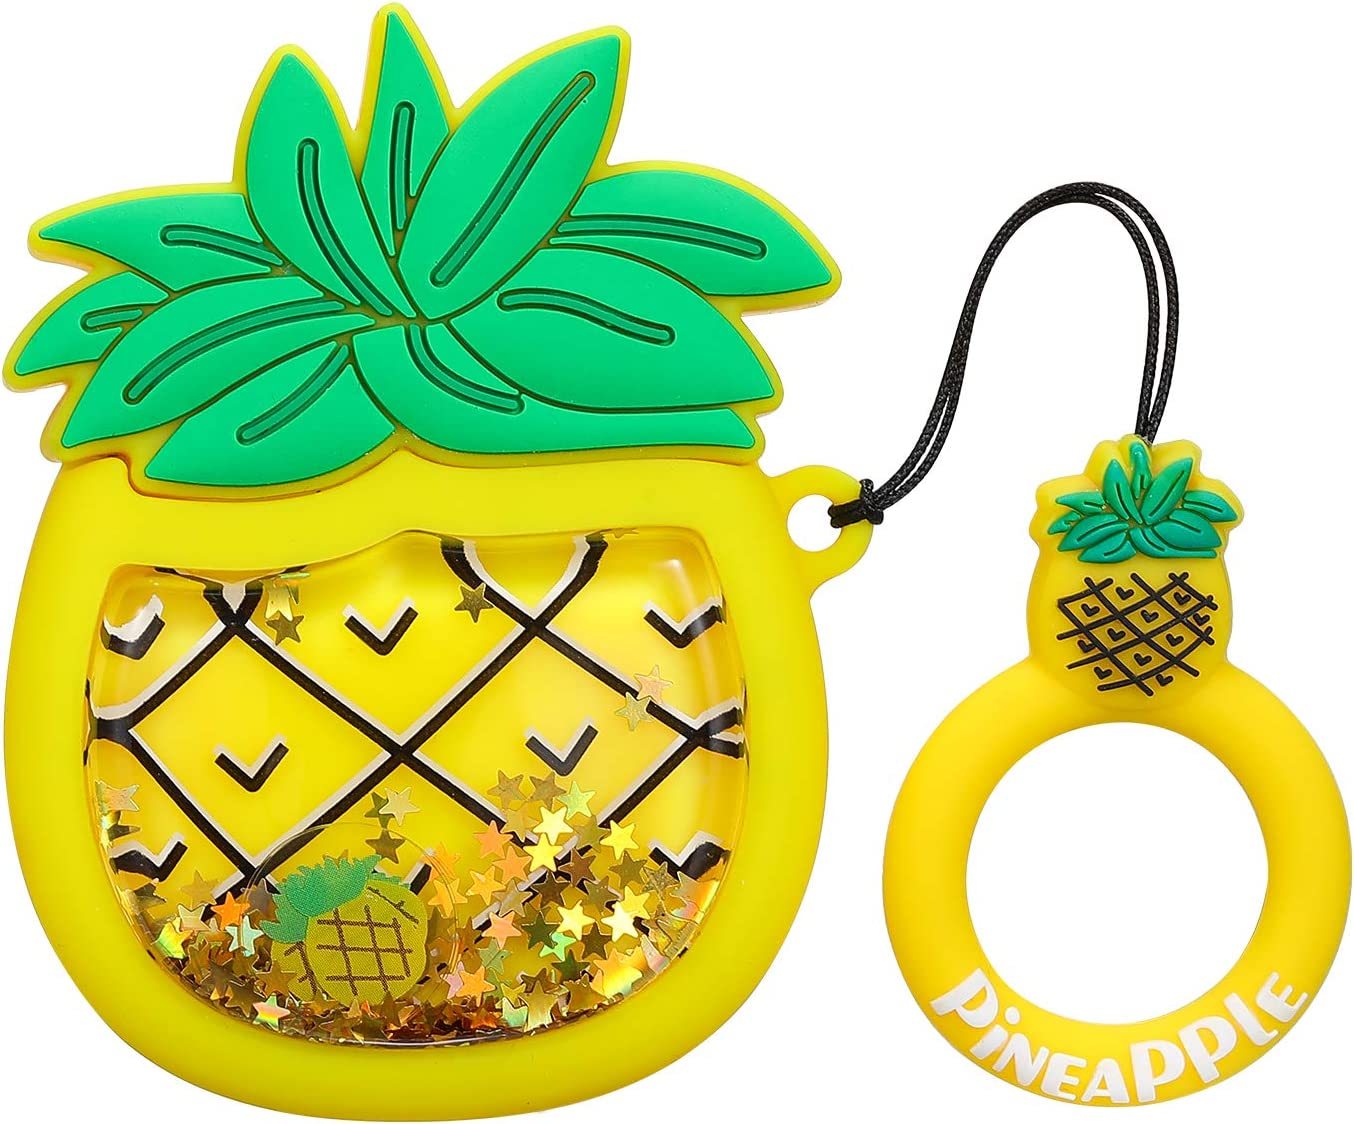 3D Funny Kawaii Fun Cool Design Skin Designer Fashion Cases for Girls Kids Teens Boys Air pods Pineapple Gift-Hero Compatible with Airpods 1/&2 Case,Cute Cartoon Character Soft Silicone Airpod Cover